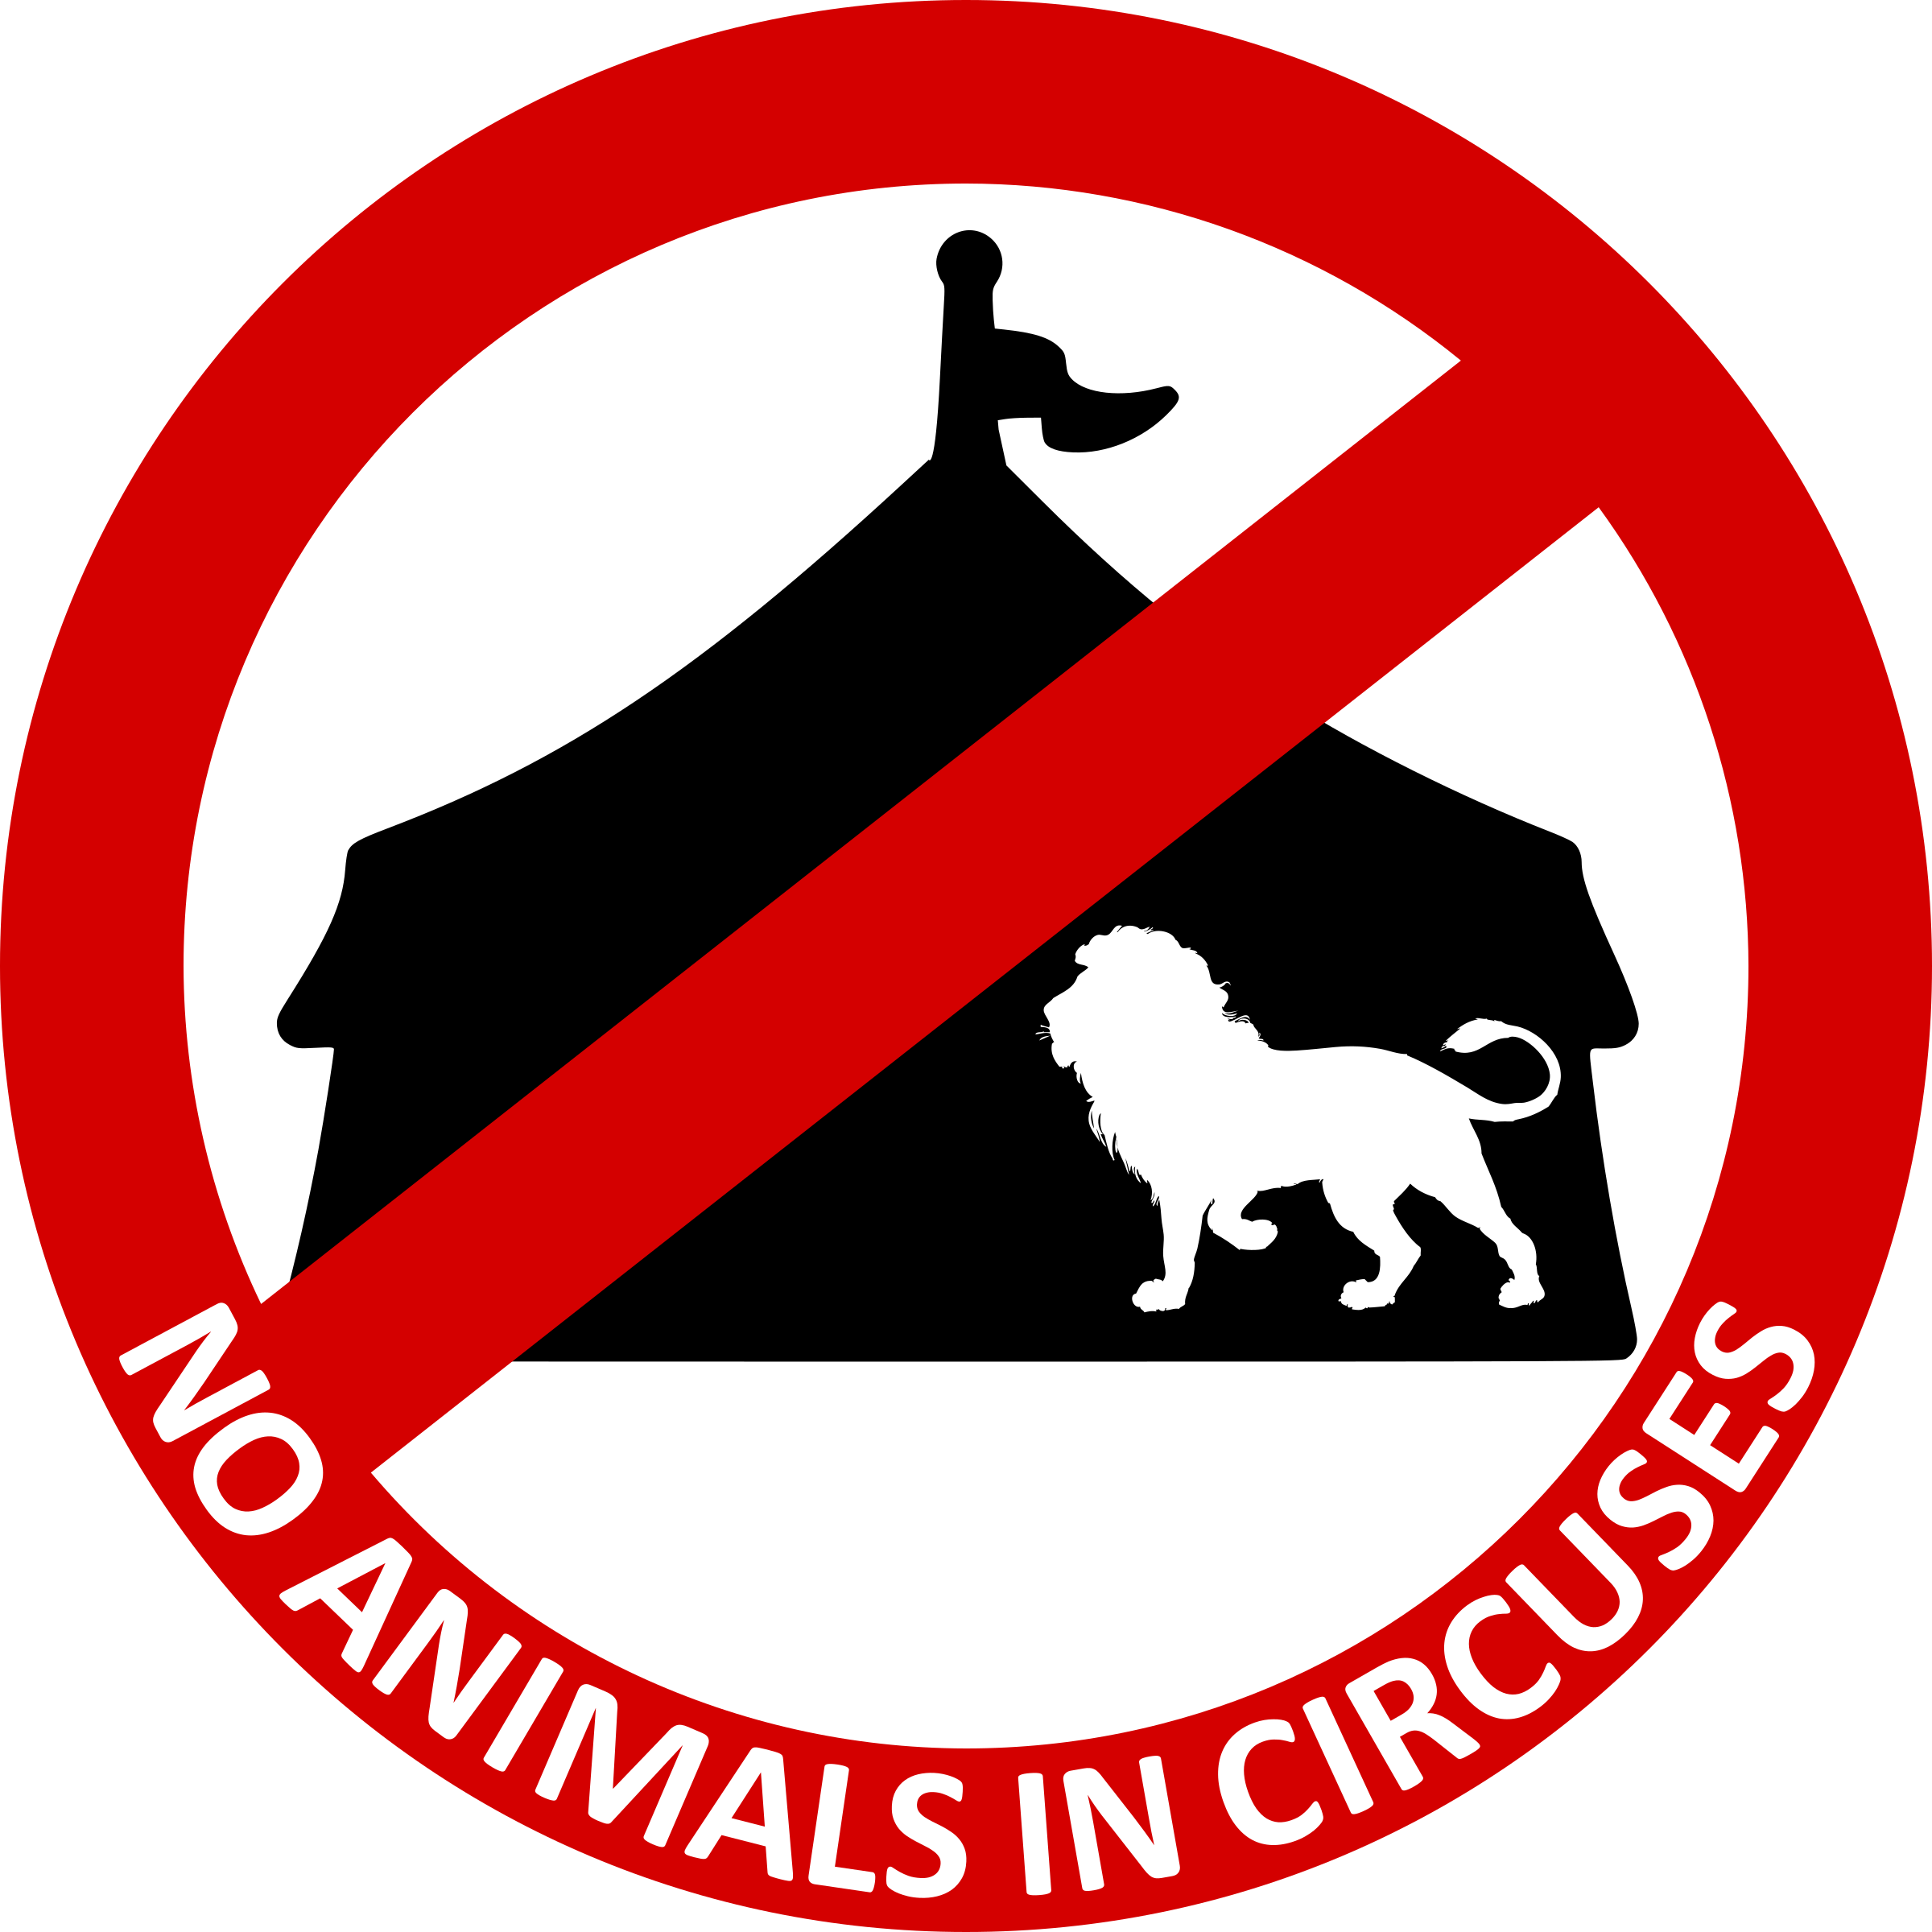 No Animals in circuses by Chrisdesign